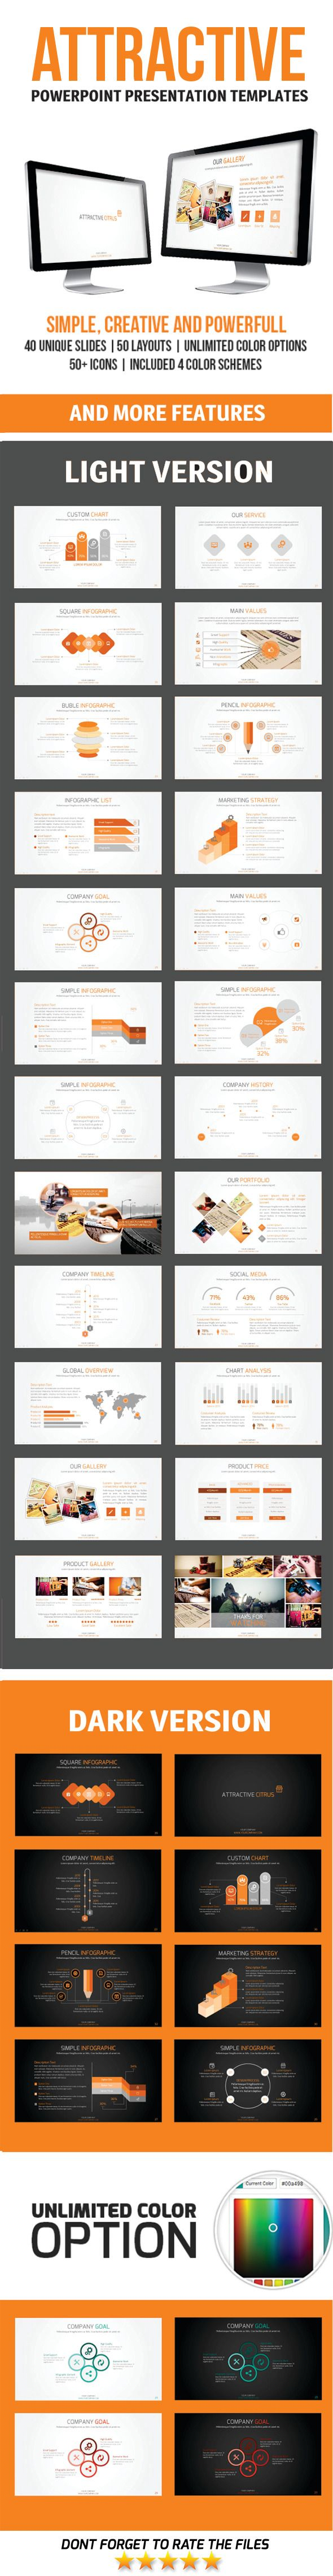 attractive powerpoint template | powerpoint presentation templates, Modern powerpoint